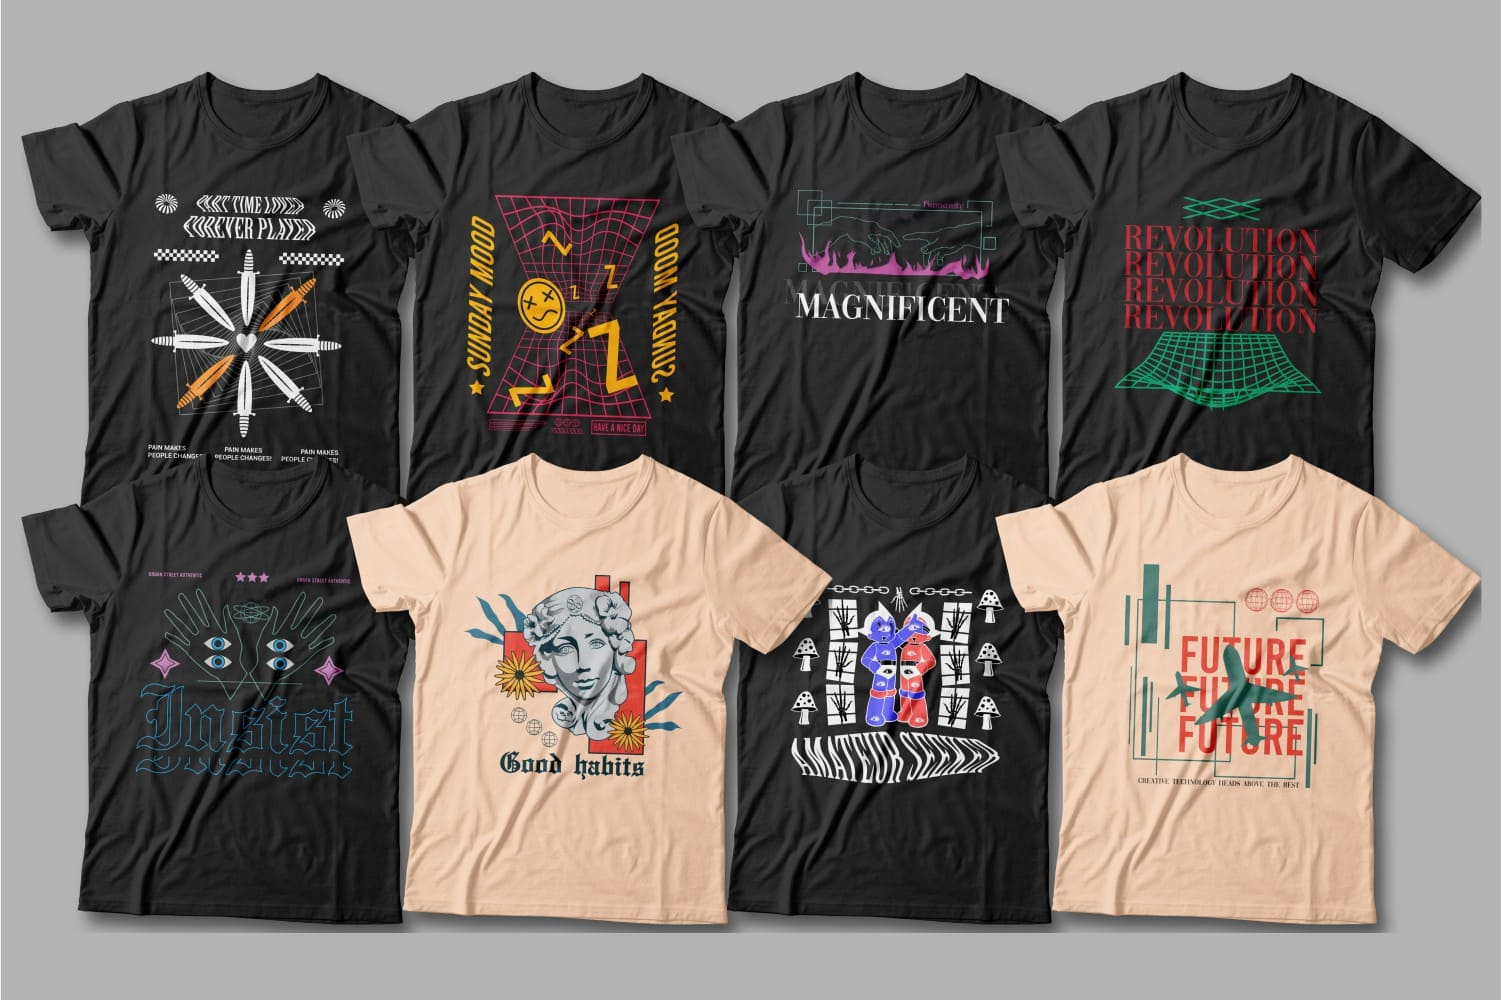 Modern black t-shirts with high-quality graphics.